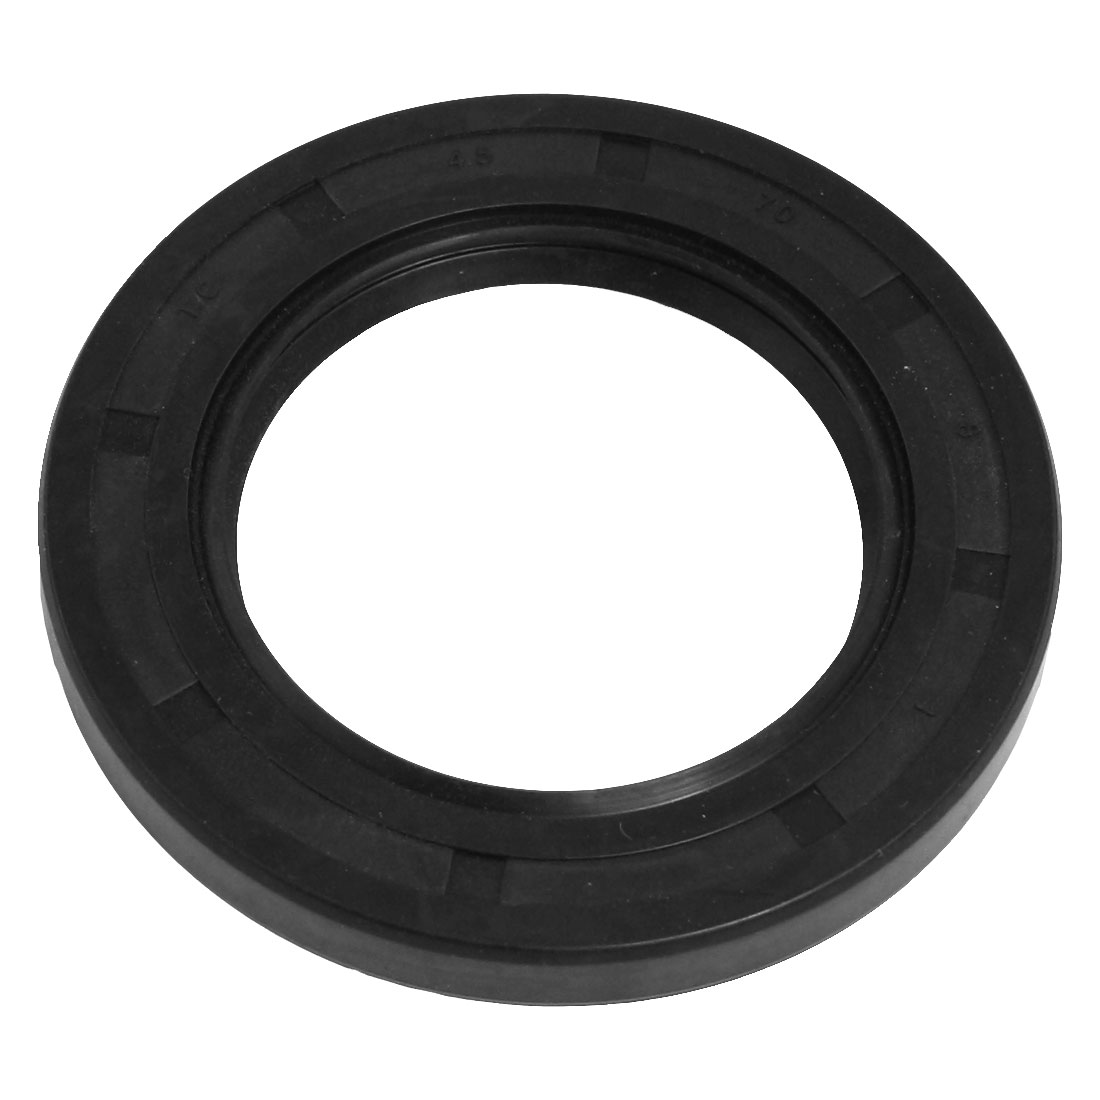 Steel Spring Nitrile Rubber TC Double Lip Oil Seal 45mm x 70mm x 8mm